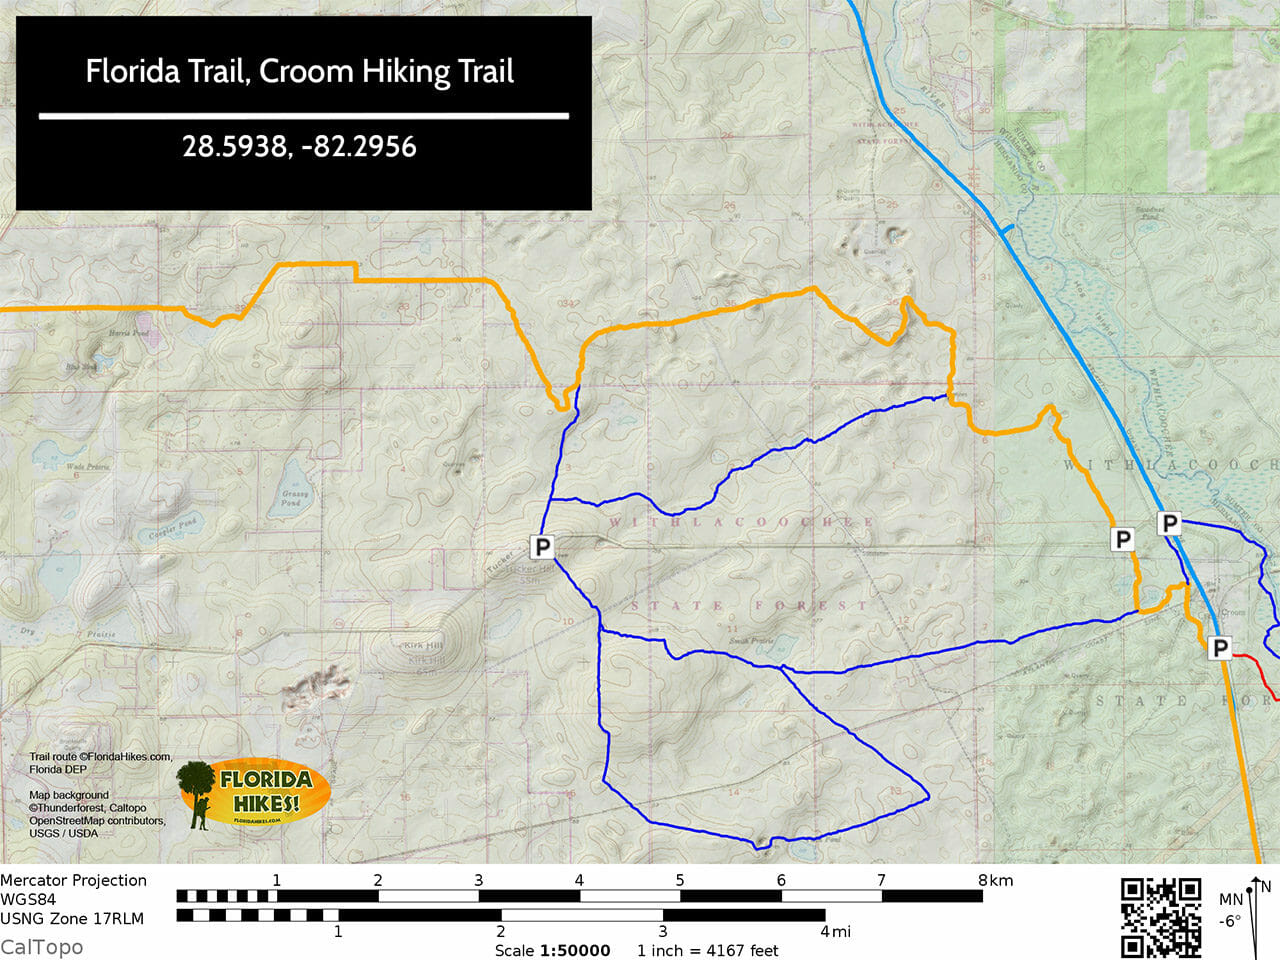 FT Croom Hiking Trail map